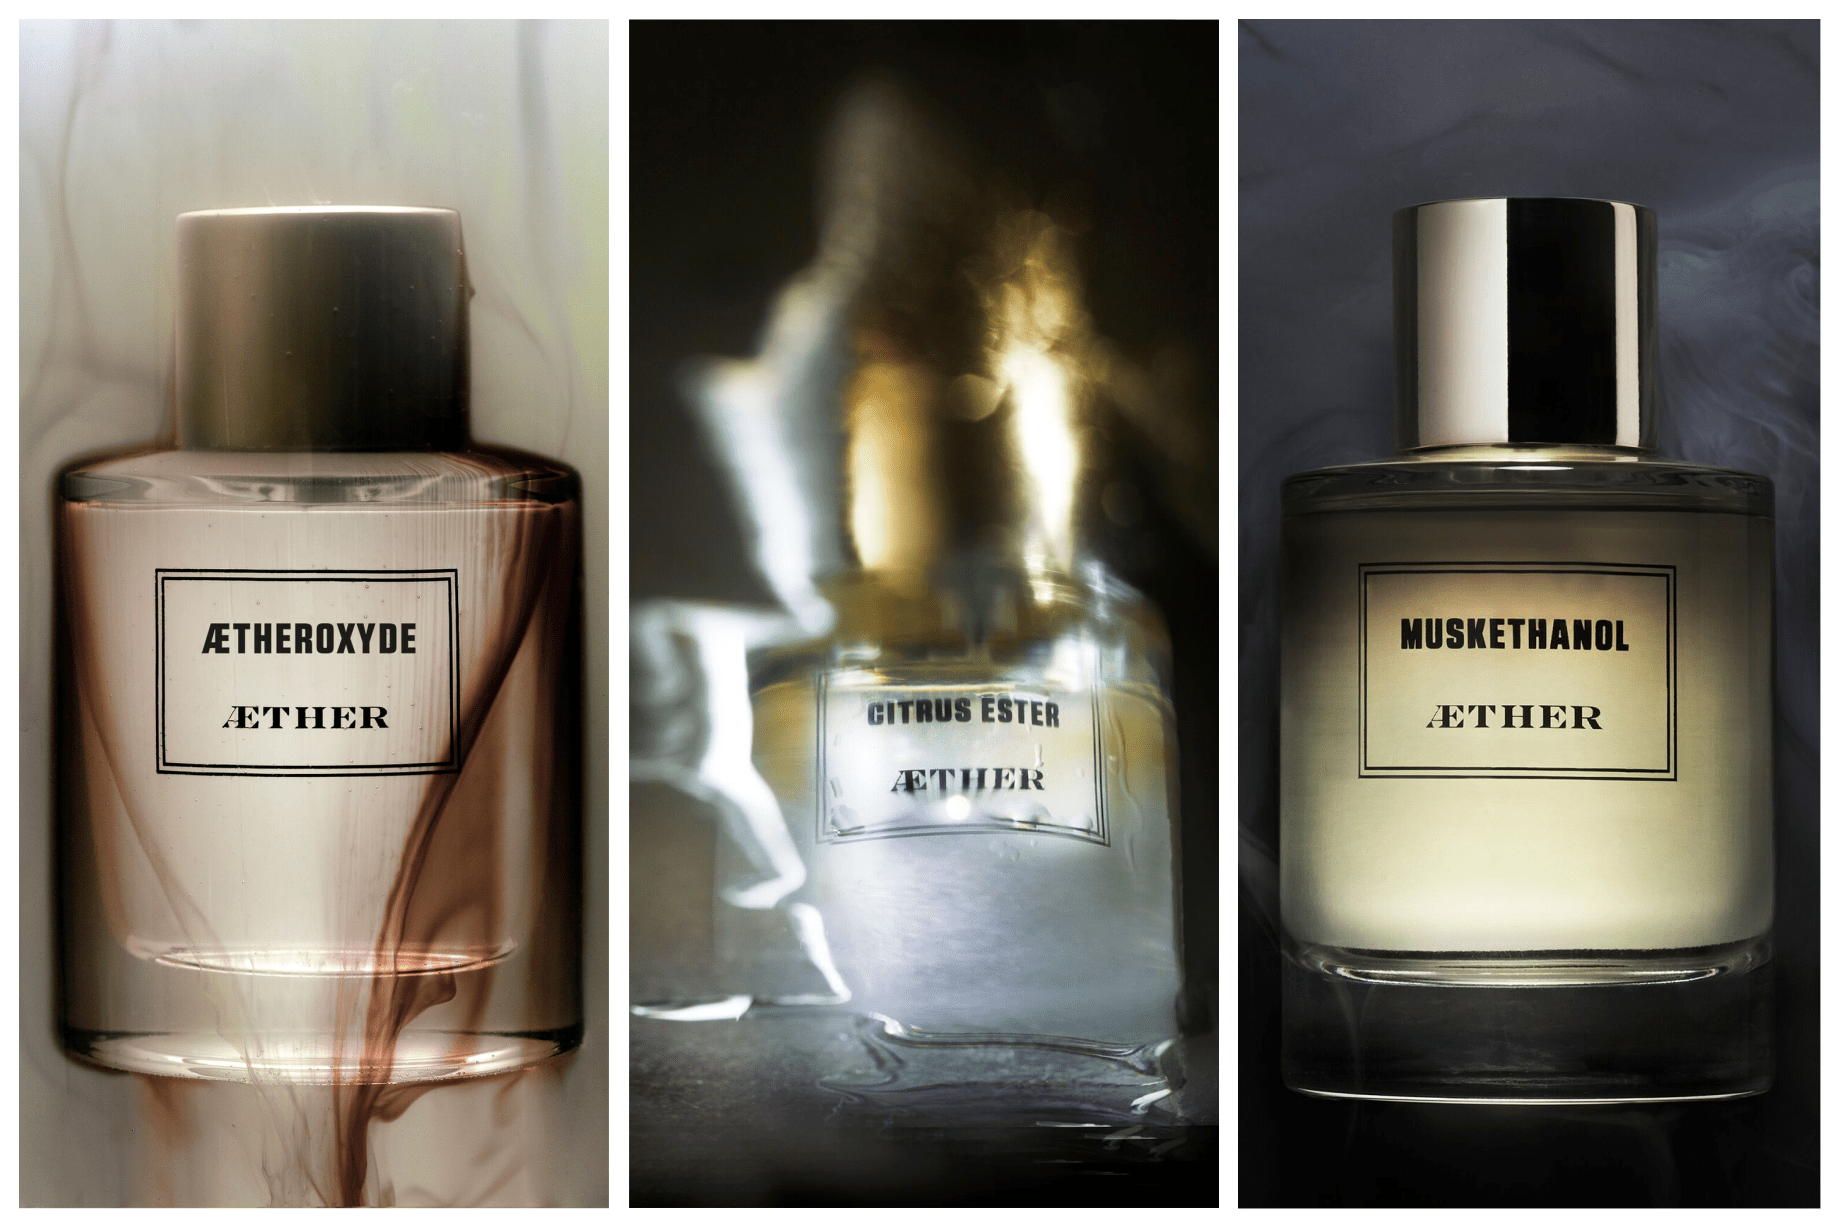 Synthetic Perfume Artistry from Aether Parfums